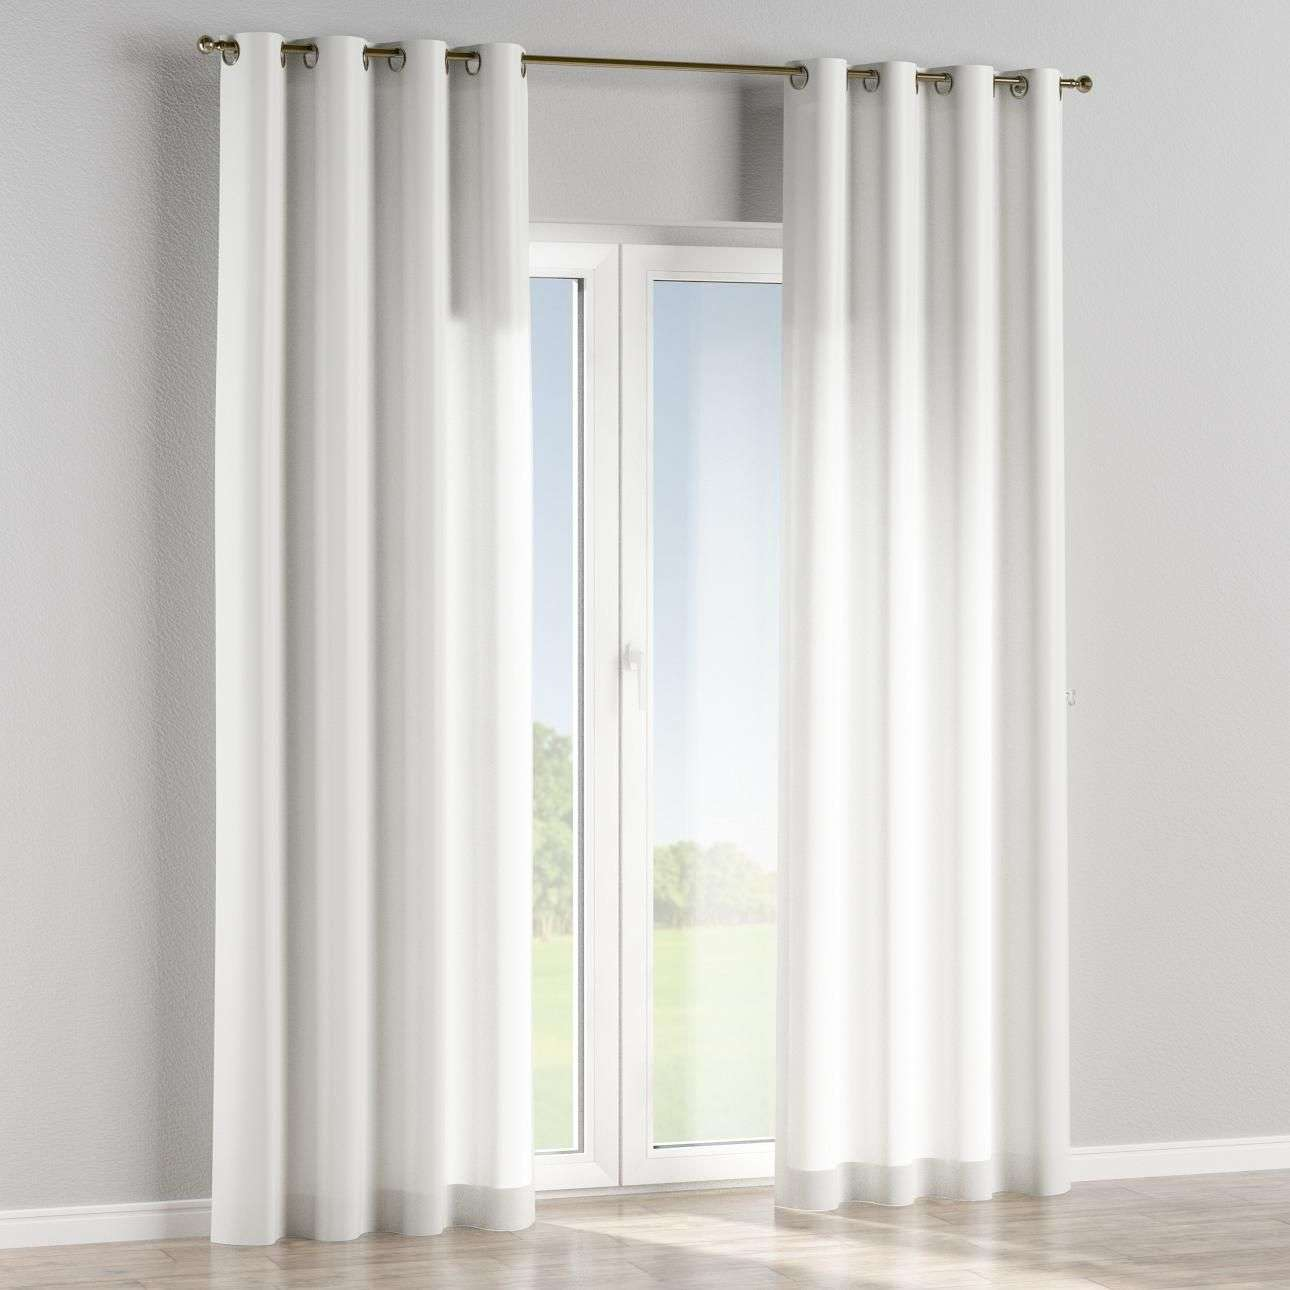 Eyelet curtains in collection Bristol, fabric: 125-69